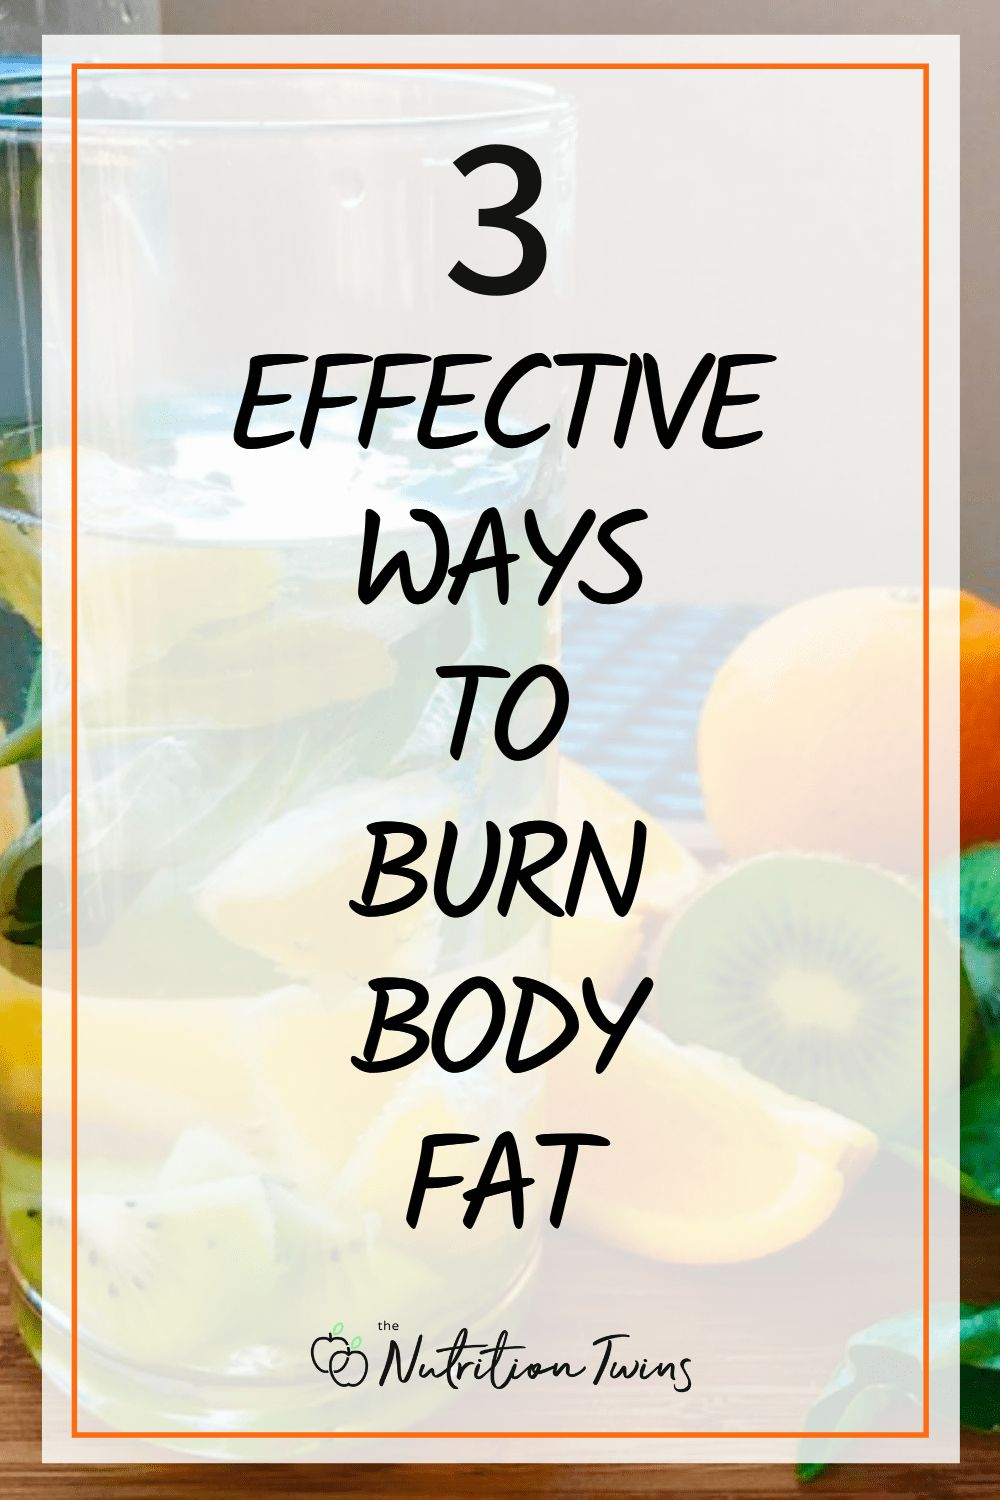 3 Effective Ways to Burn Body Fat. These easy weight loss tips will help you get even greater weight loss results with your healthy recipes, weight loss diet plan and flat belly workout plan. #flatbellydiet #weightloss #loseweight For MORE RECIPES, fitness & nutrition tips please SIGN UP for our FREE NEWSLETTER www.NutritionTwins.com